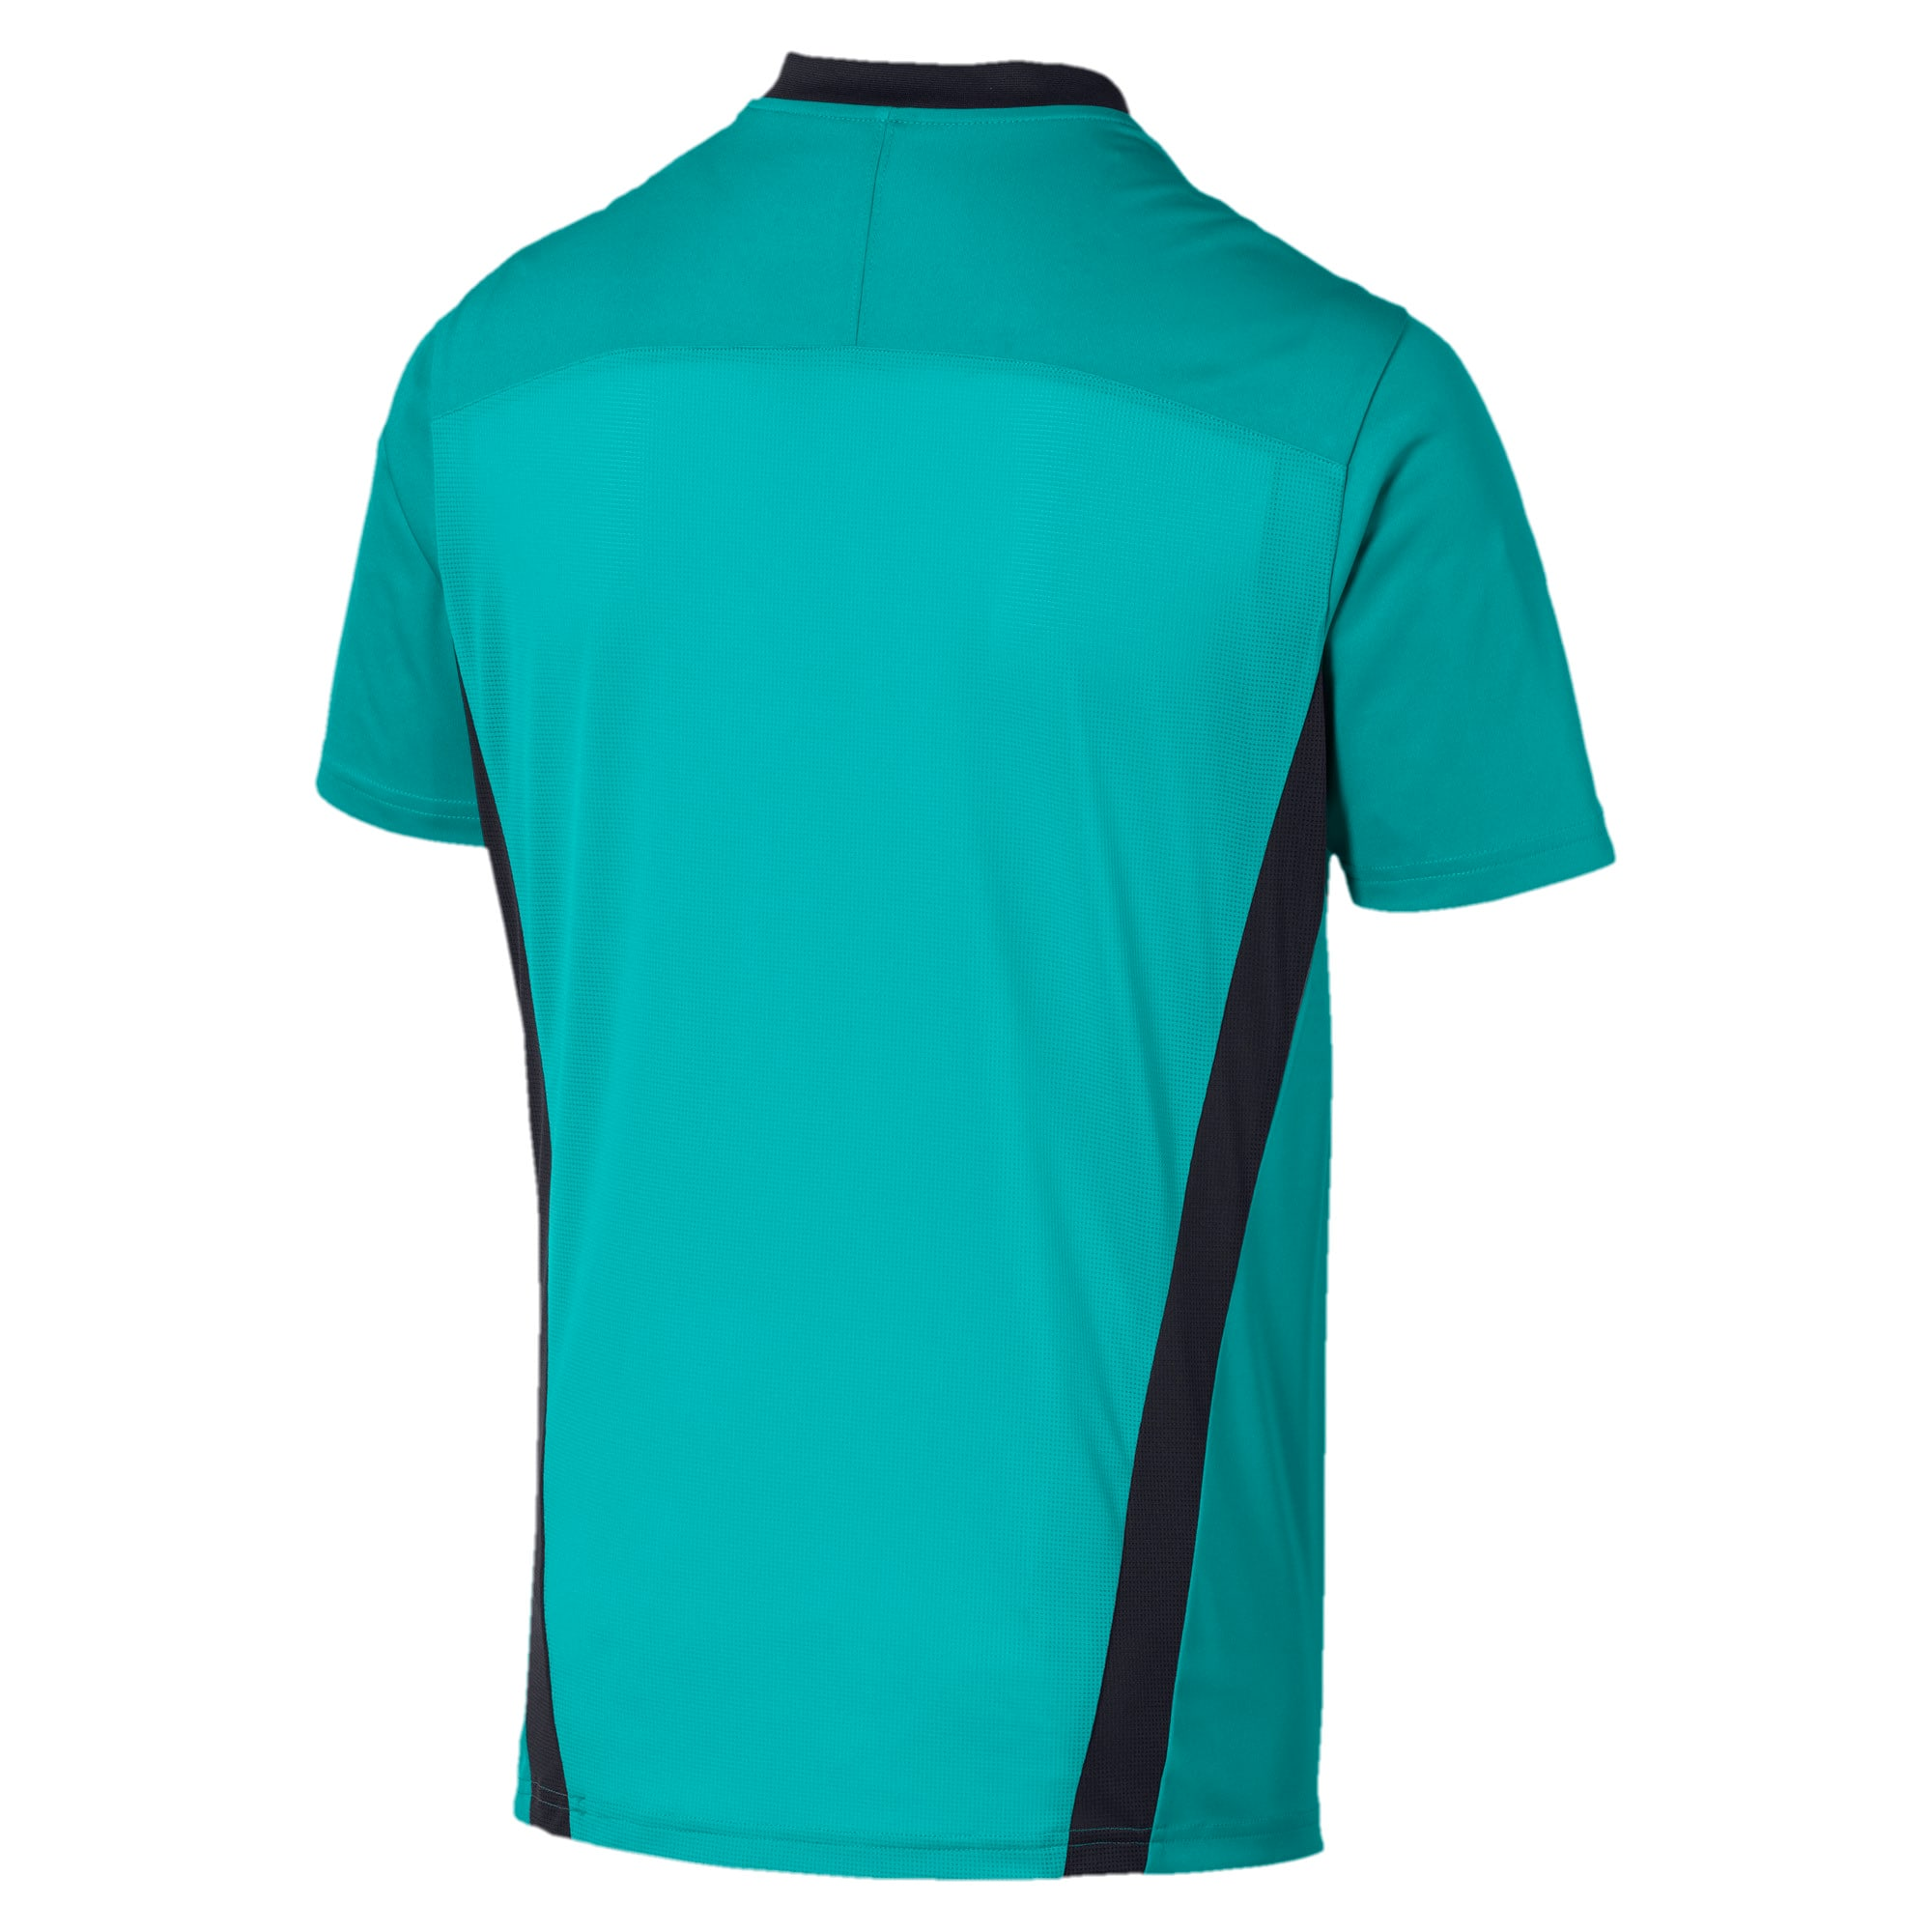 Thumbnail 5 of Men's Training Tee, Blue Turquoise-Ebony, medium